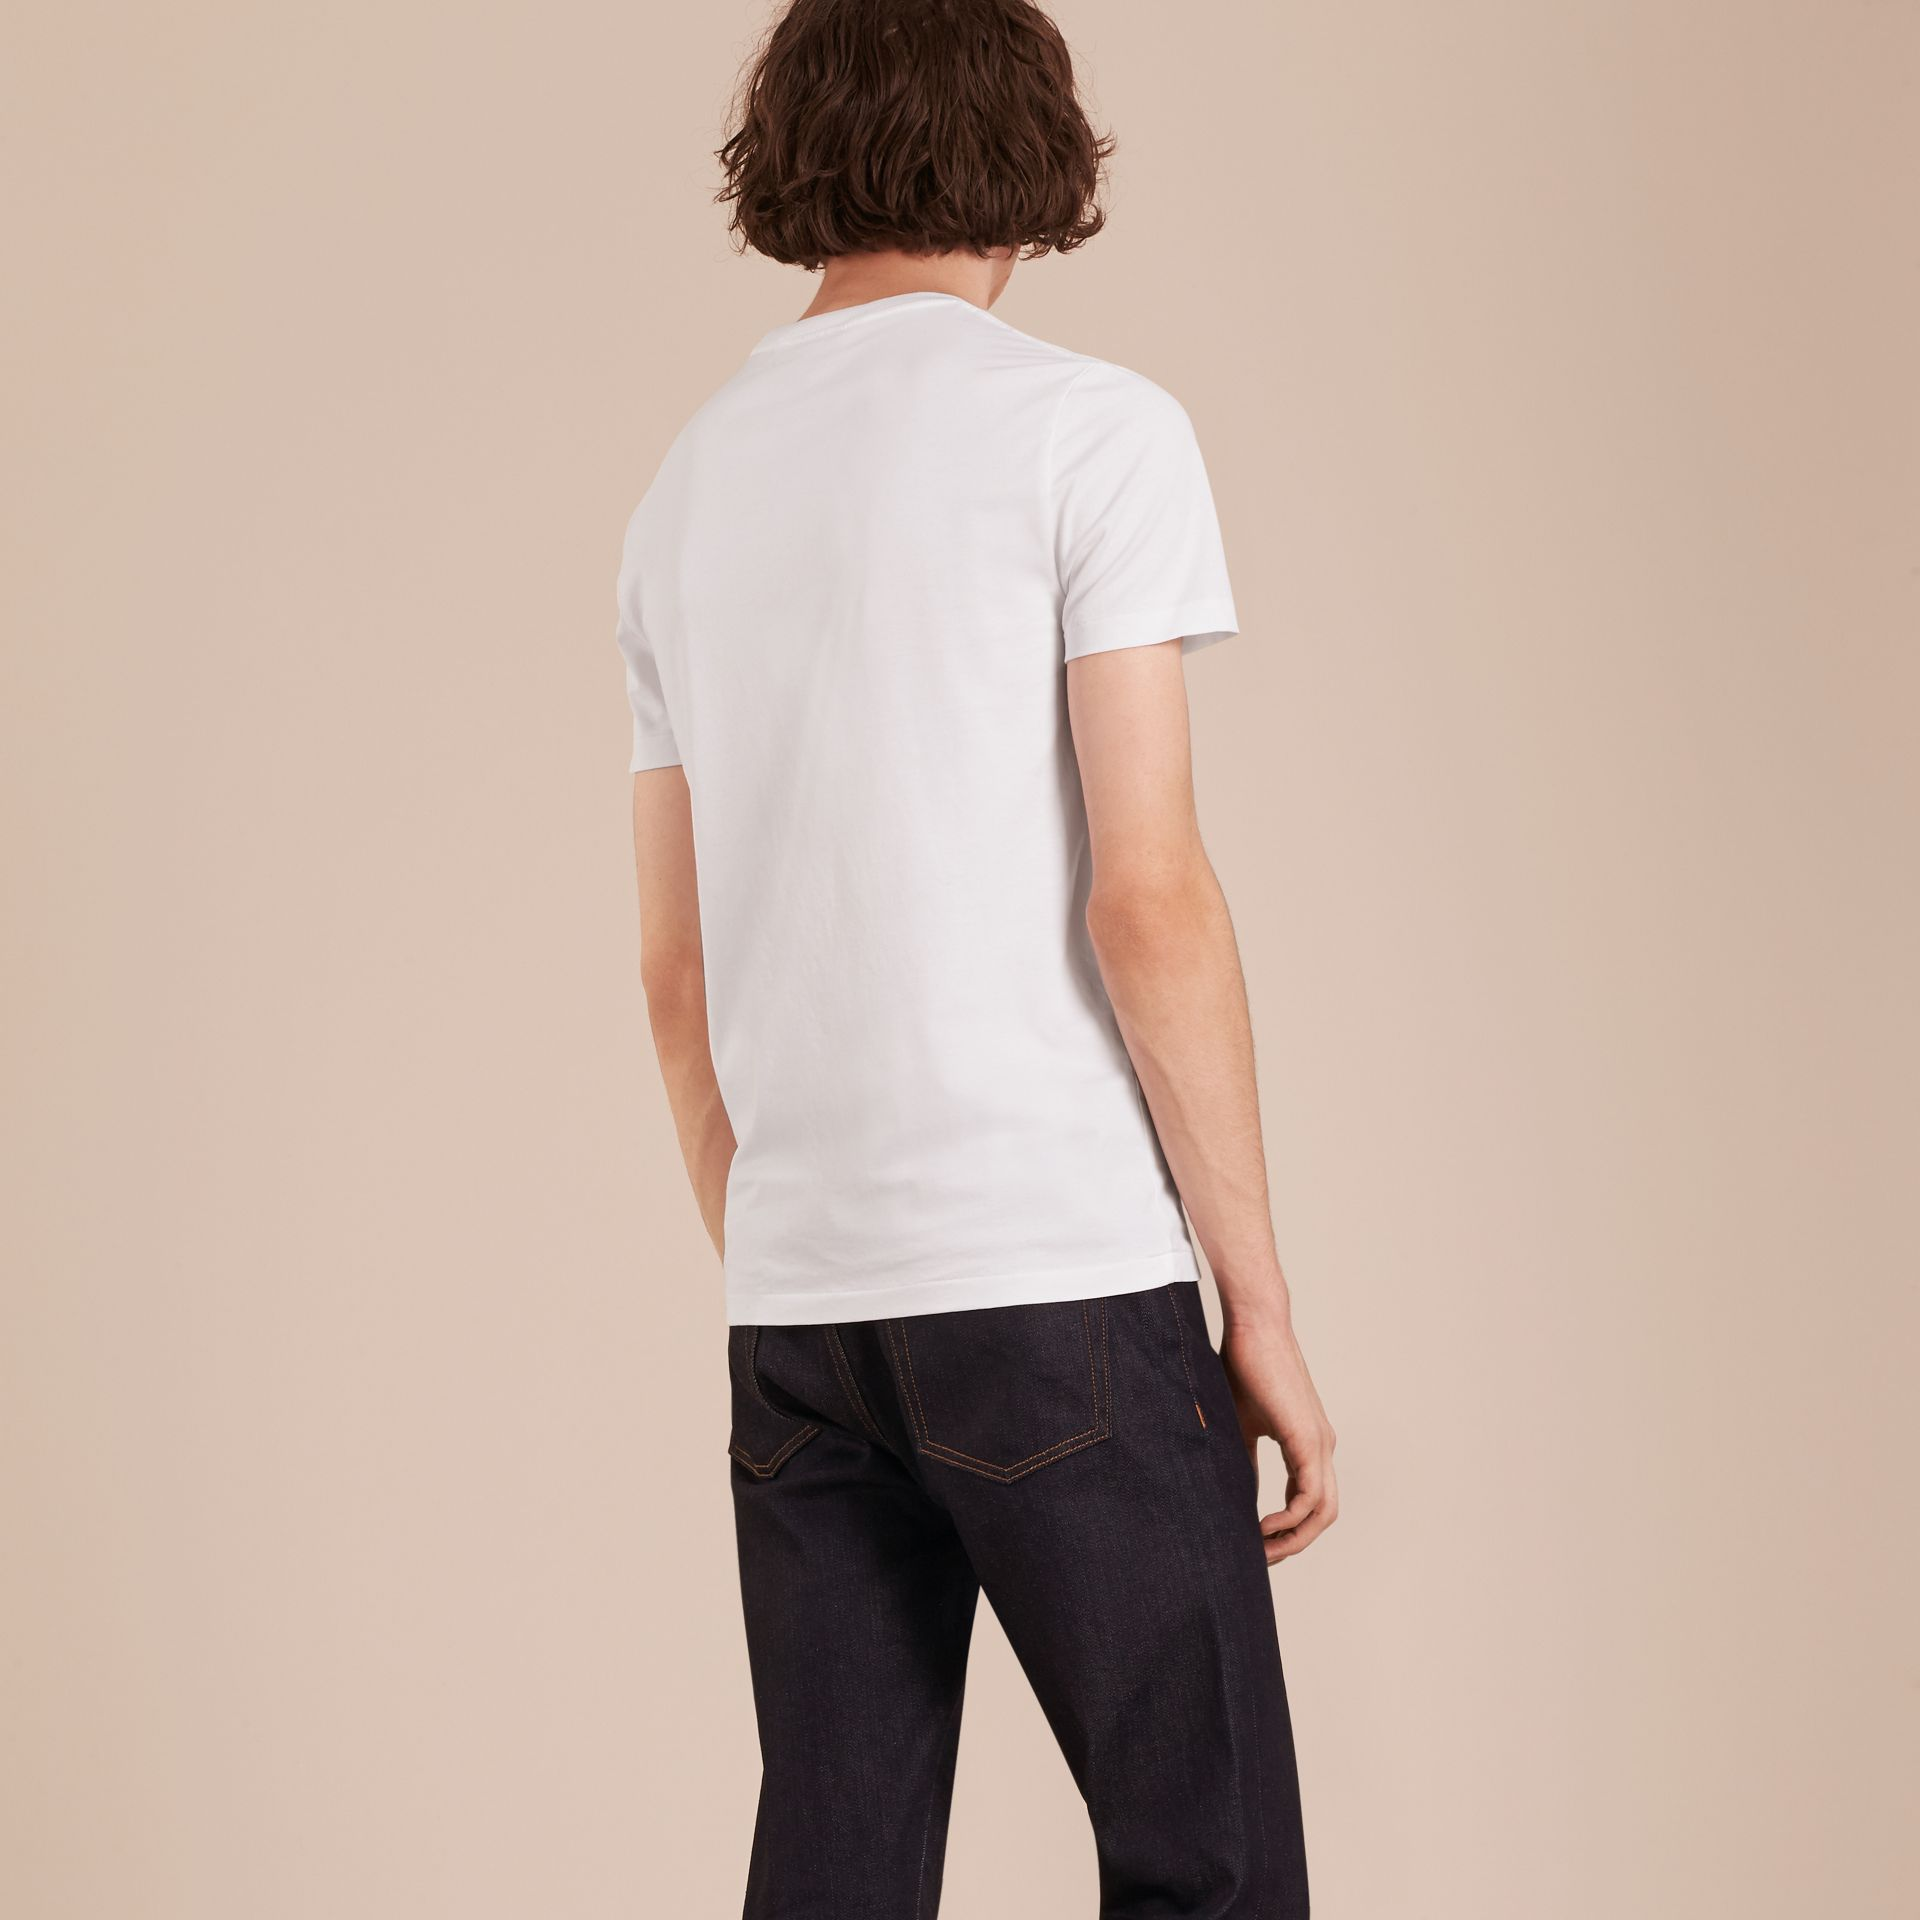 Optic white Cotton V-neck T-shirt Optic White - gallery image 3